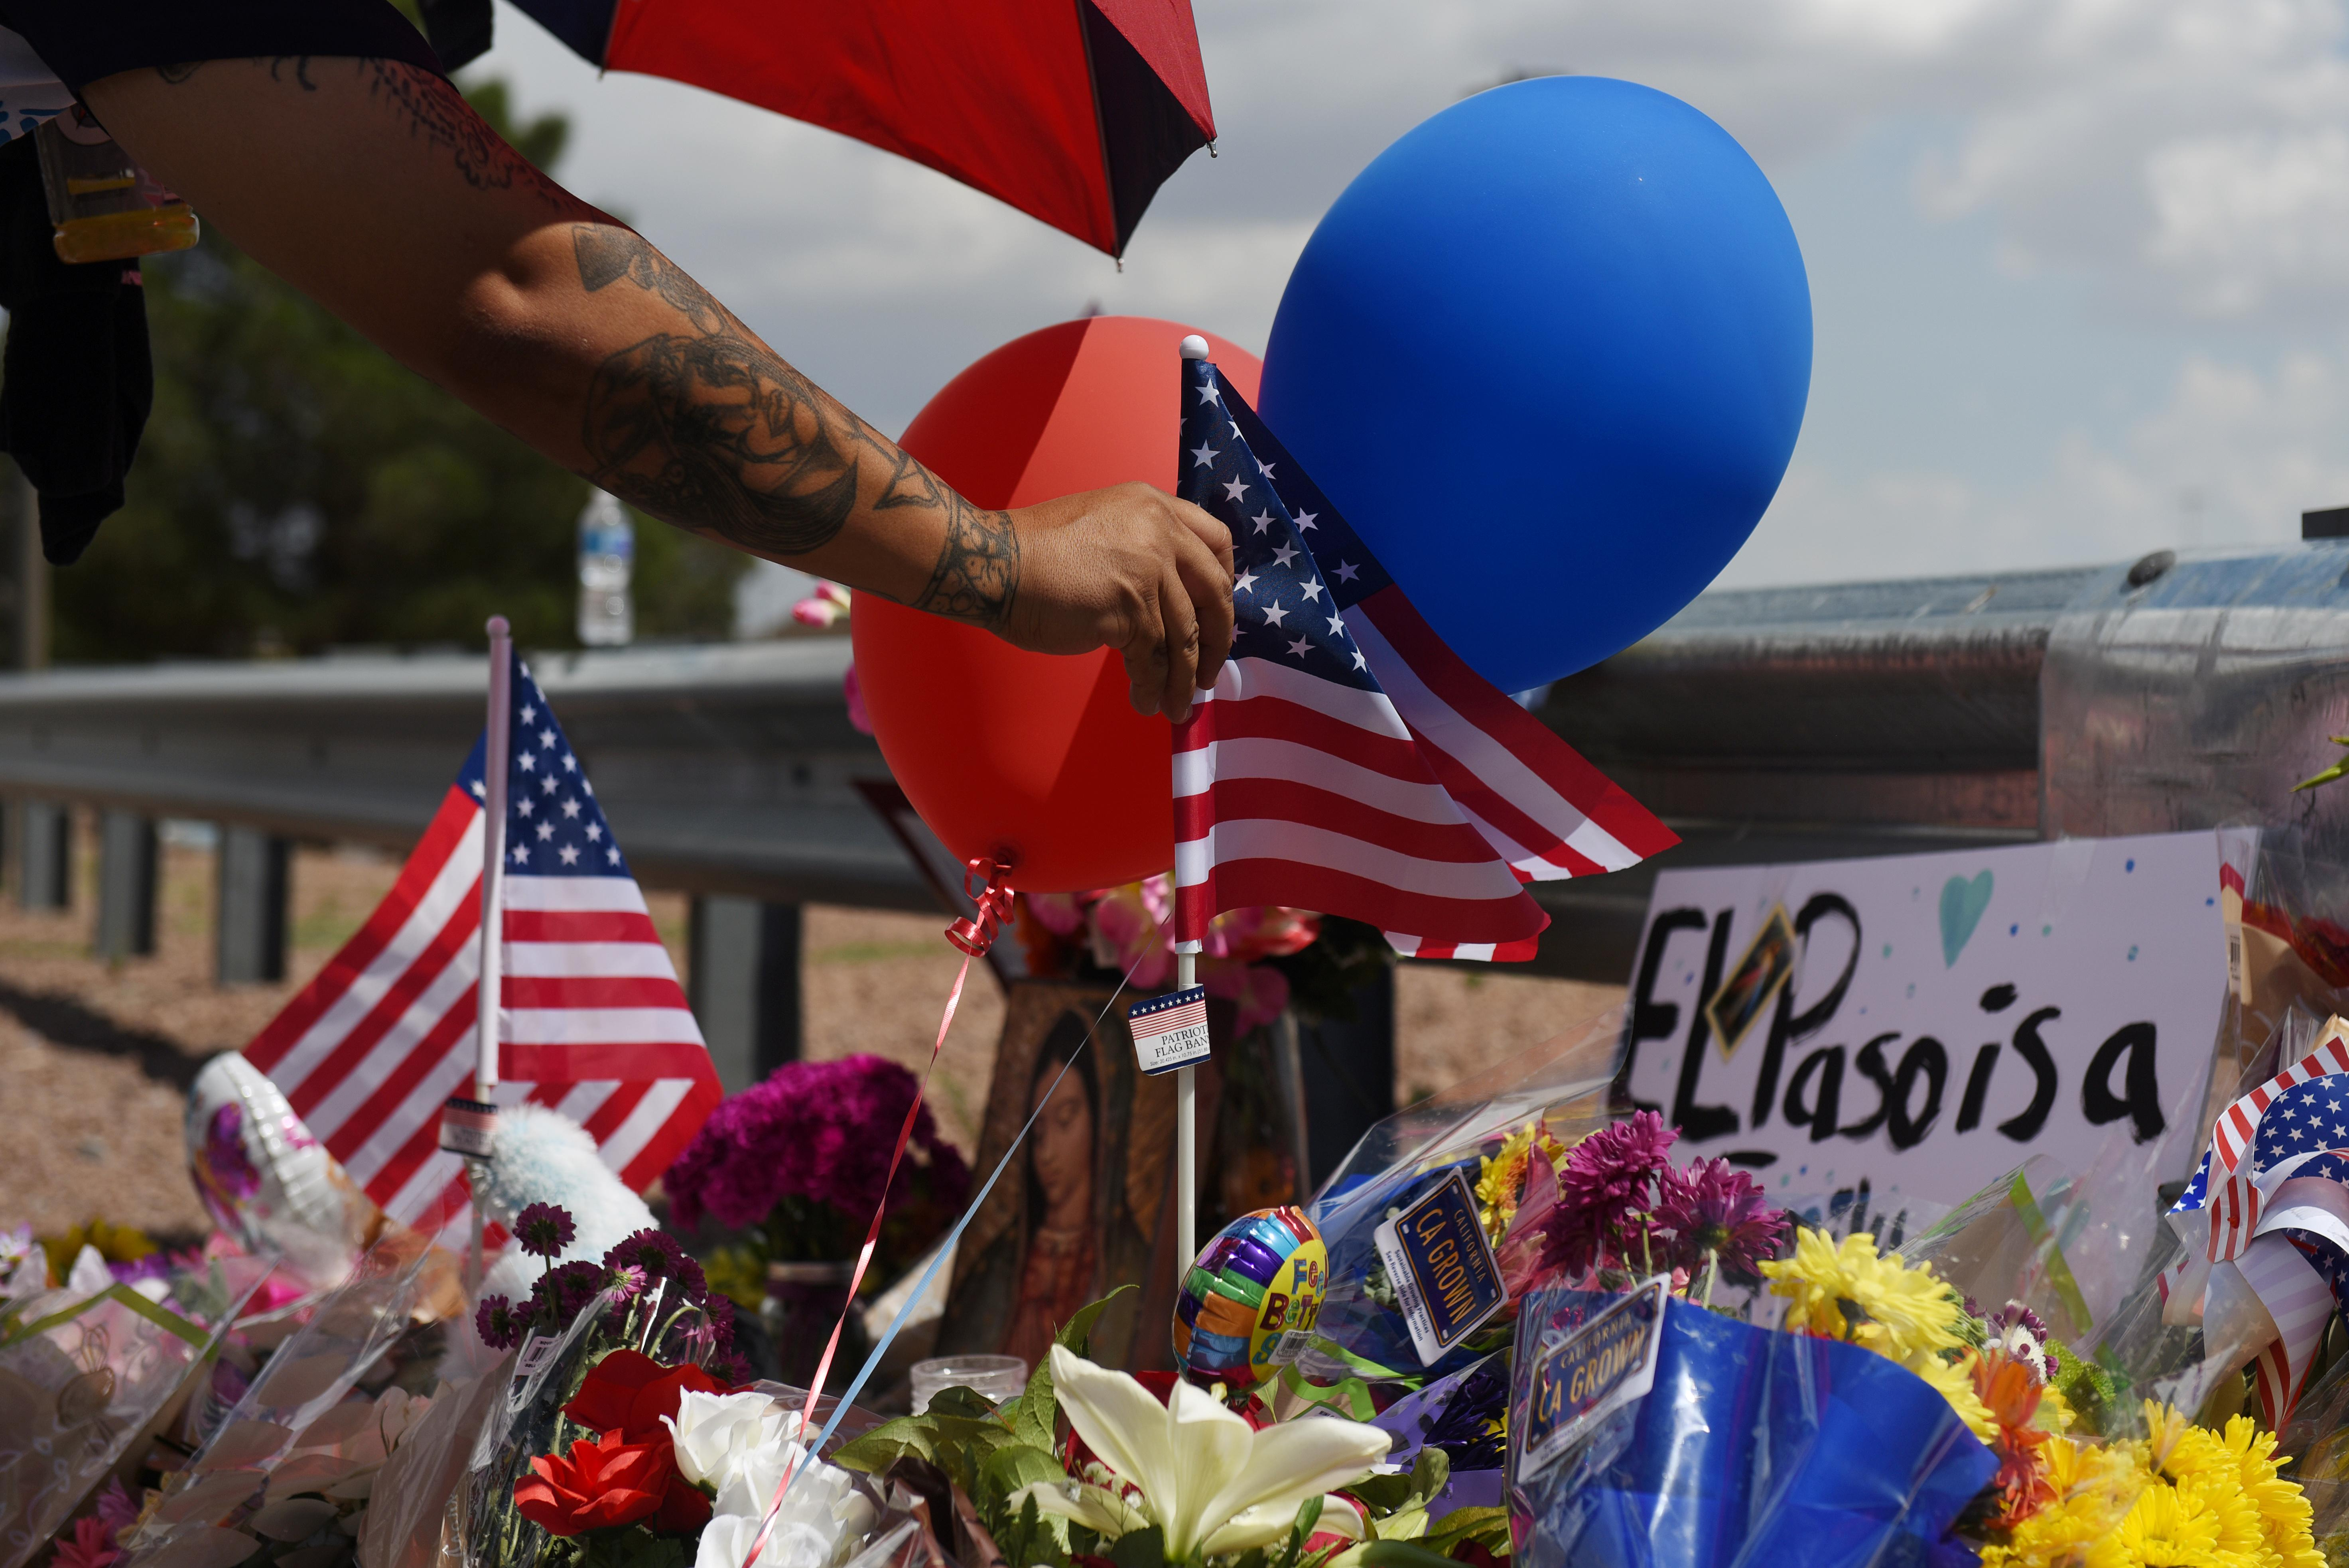 Democrats aim their outrage at Trump after two mass shootings